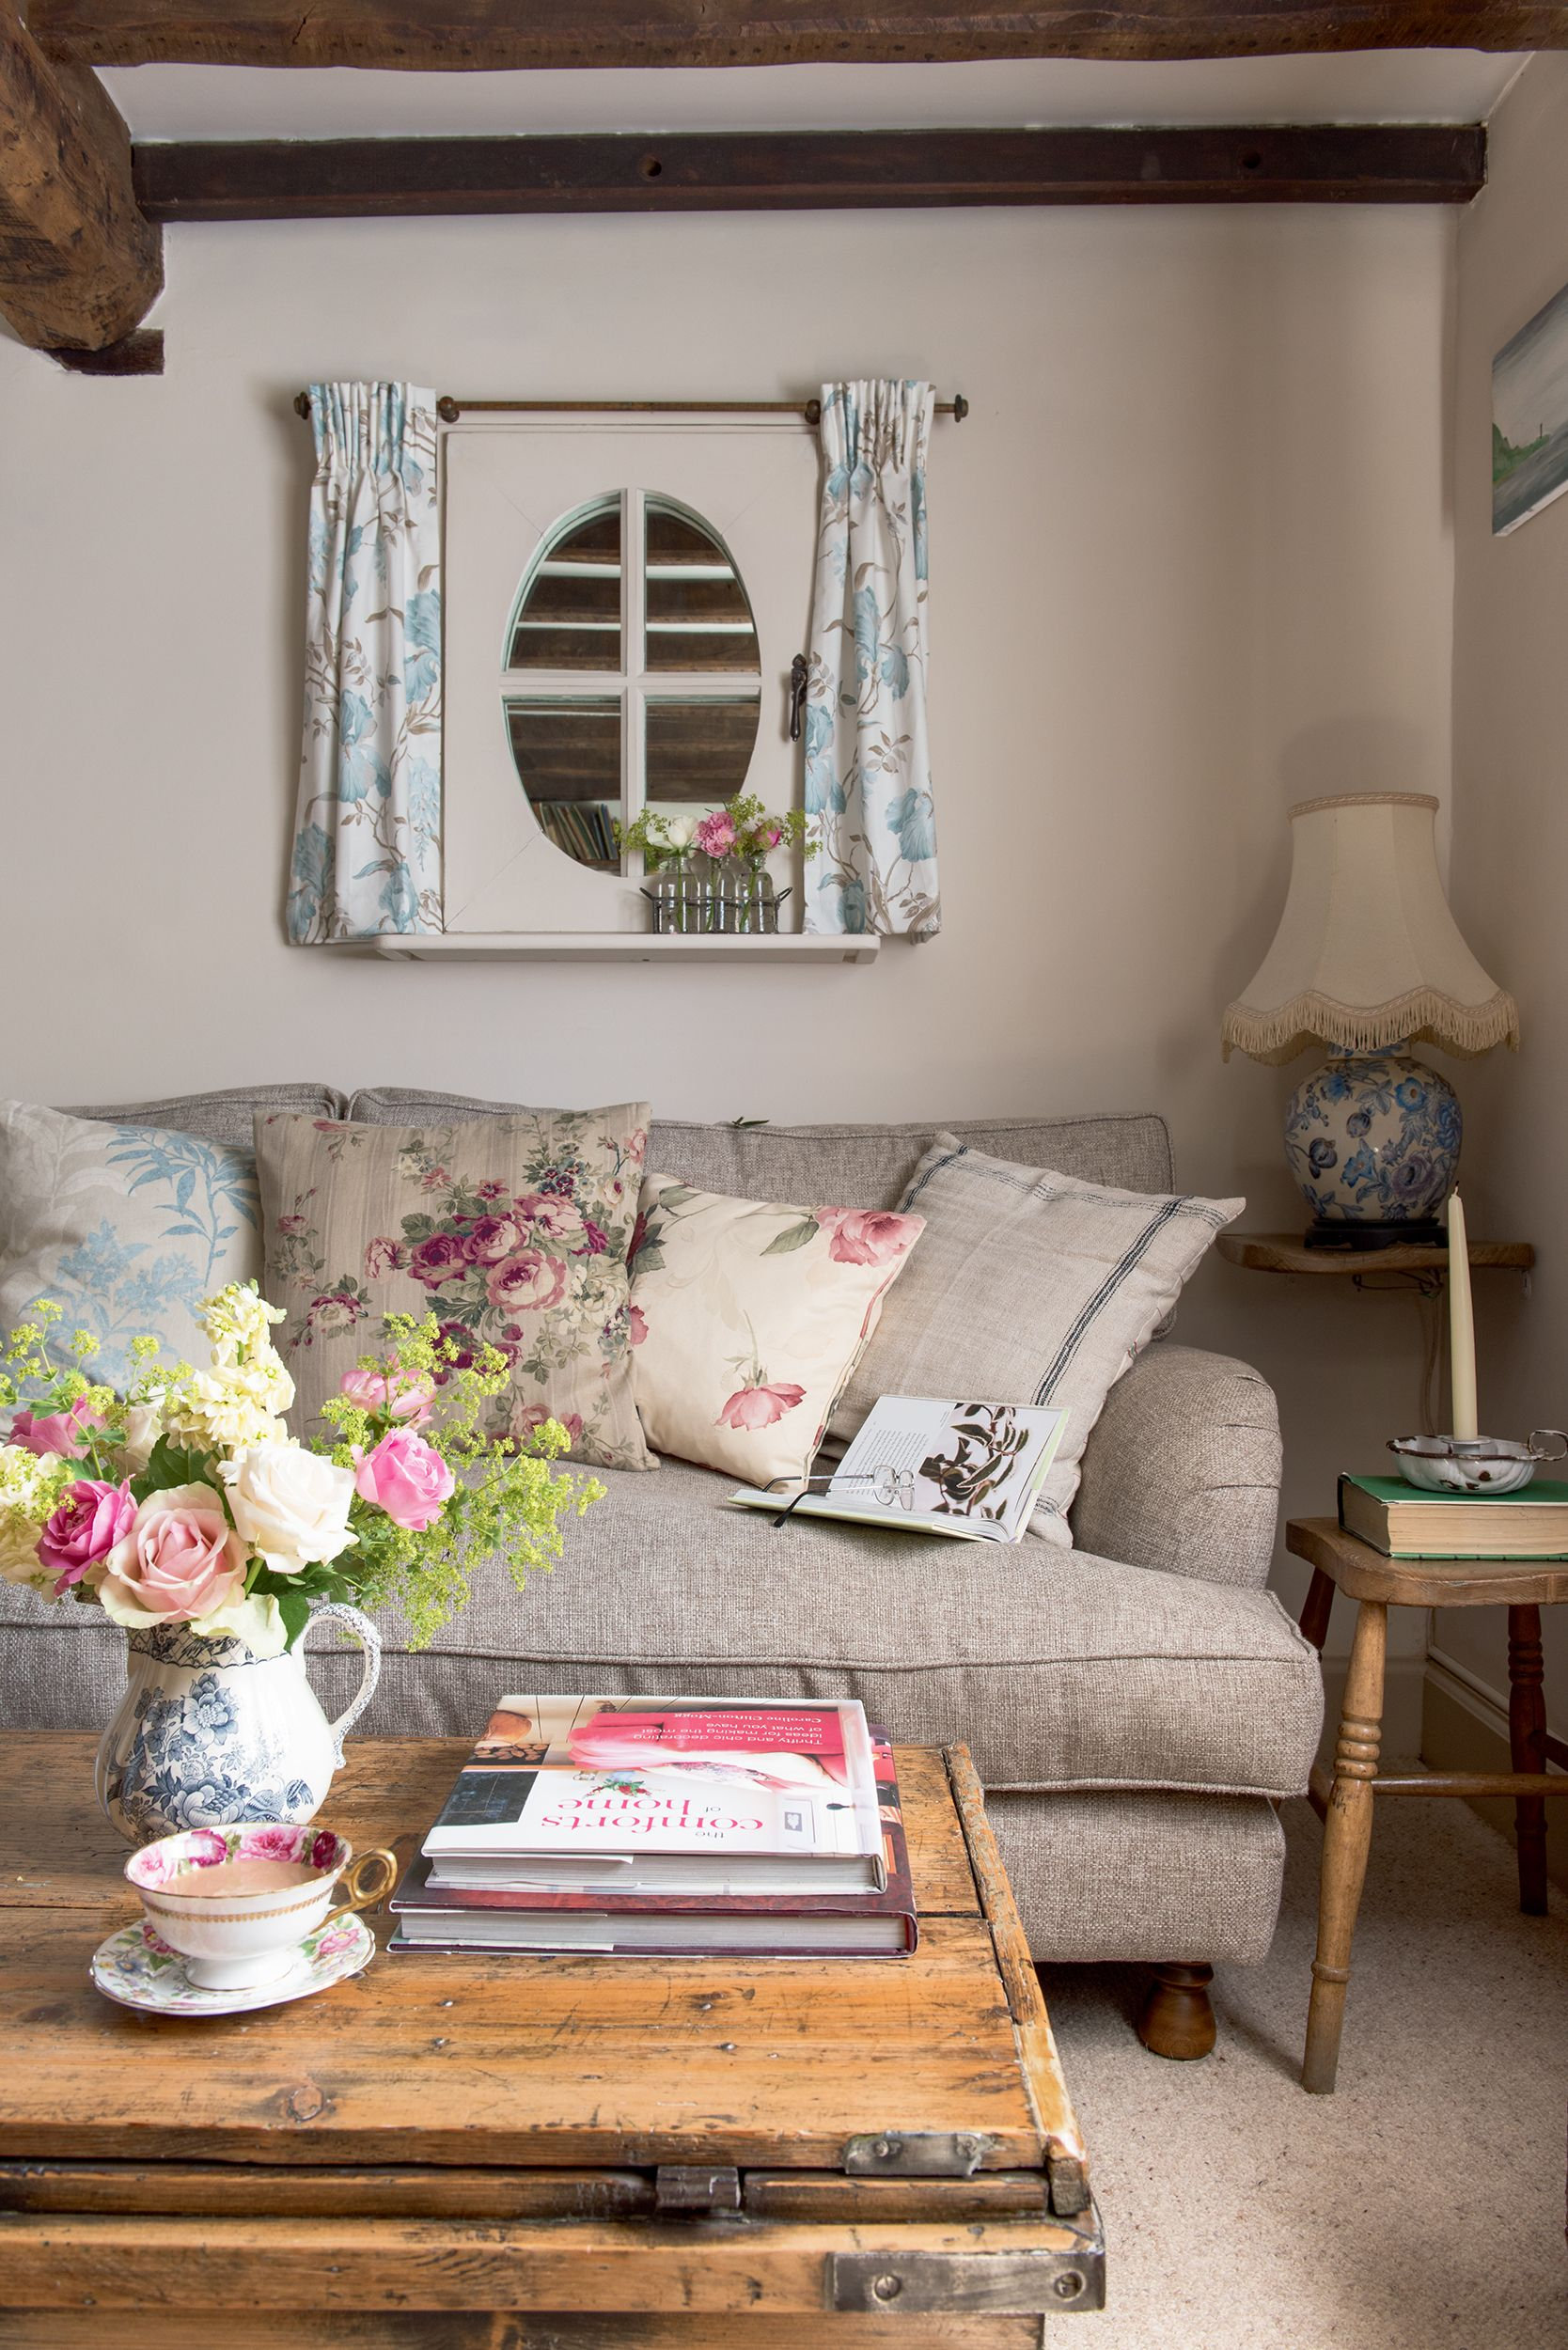 10 cottage style home ideas: how to create the cottage look